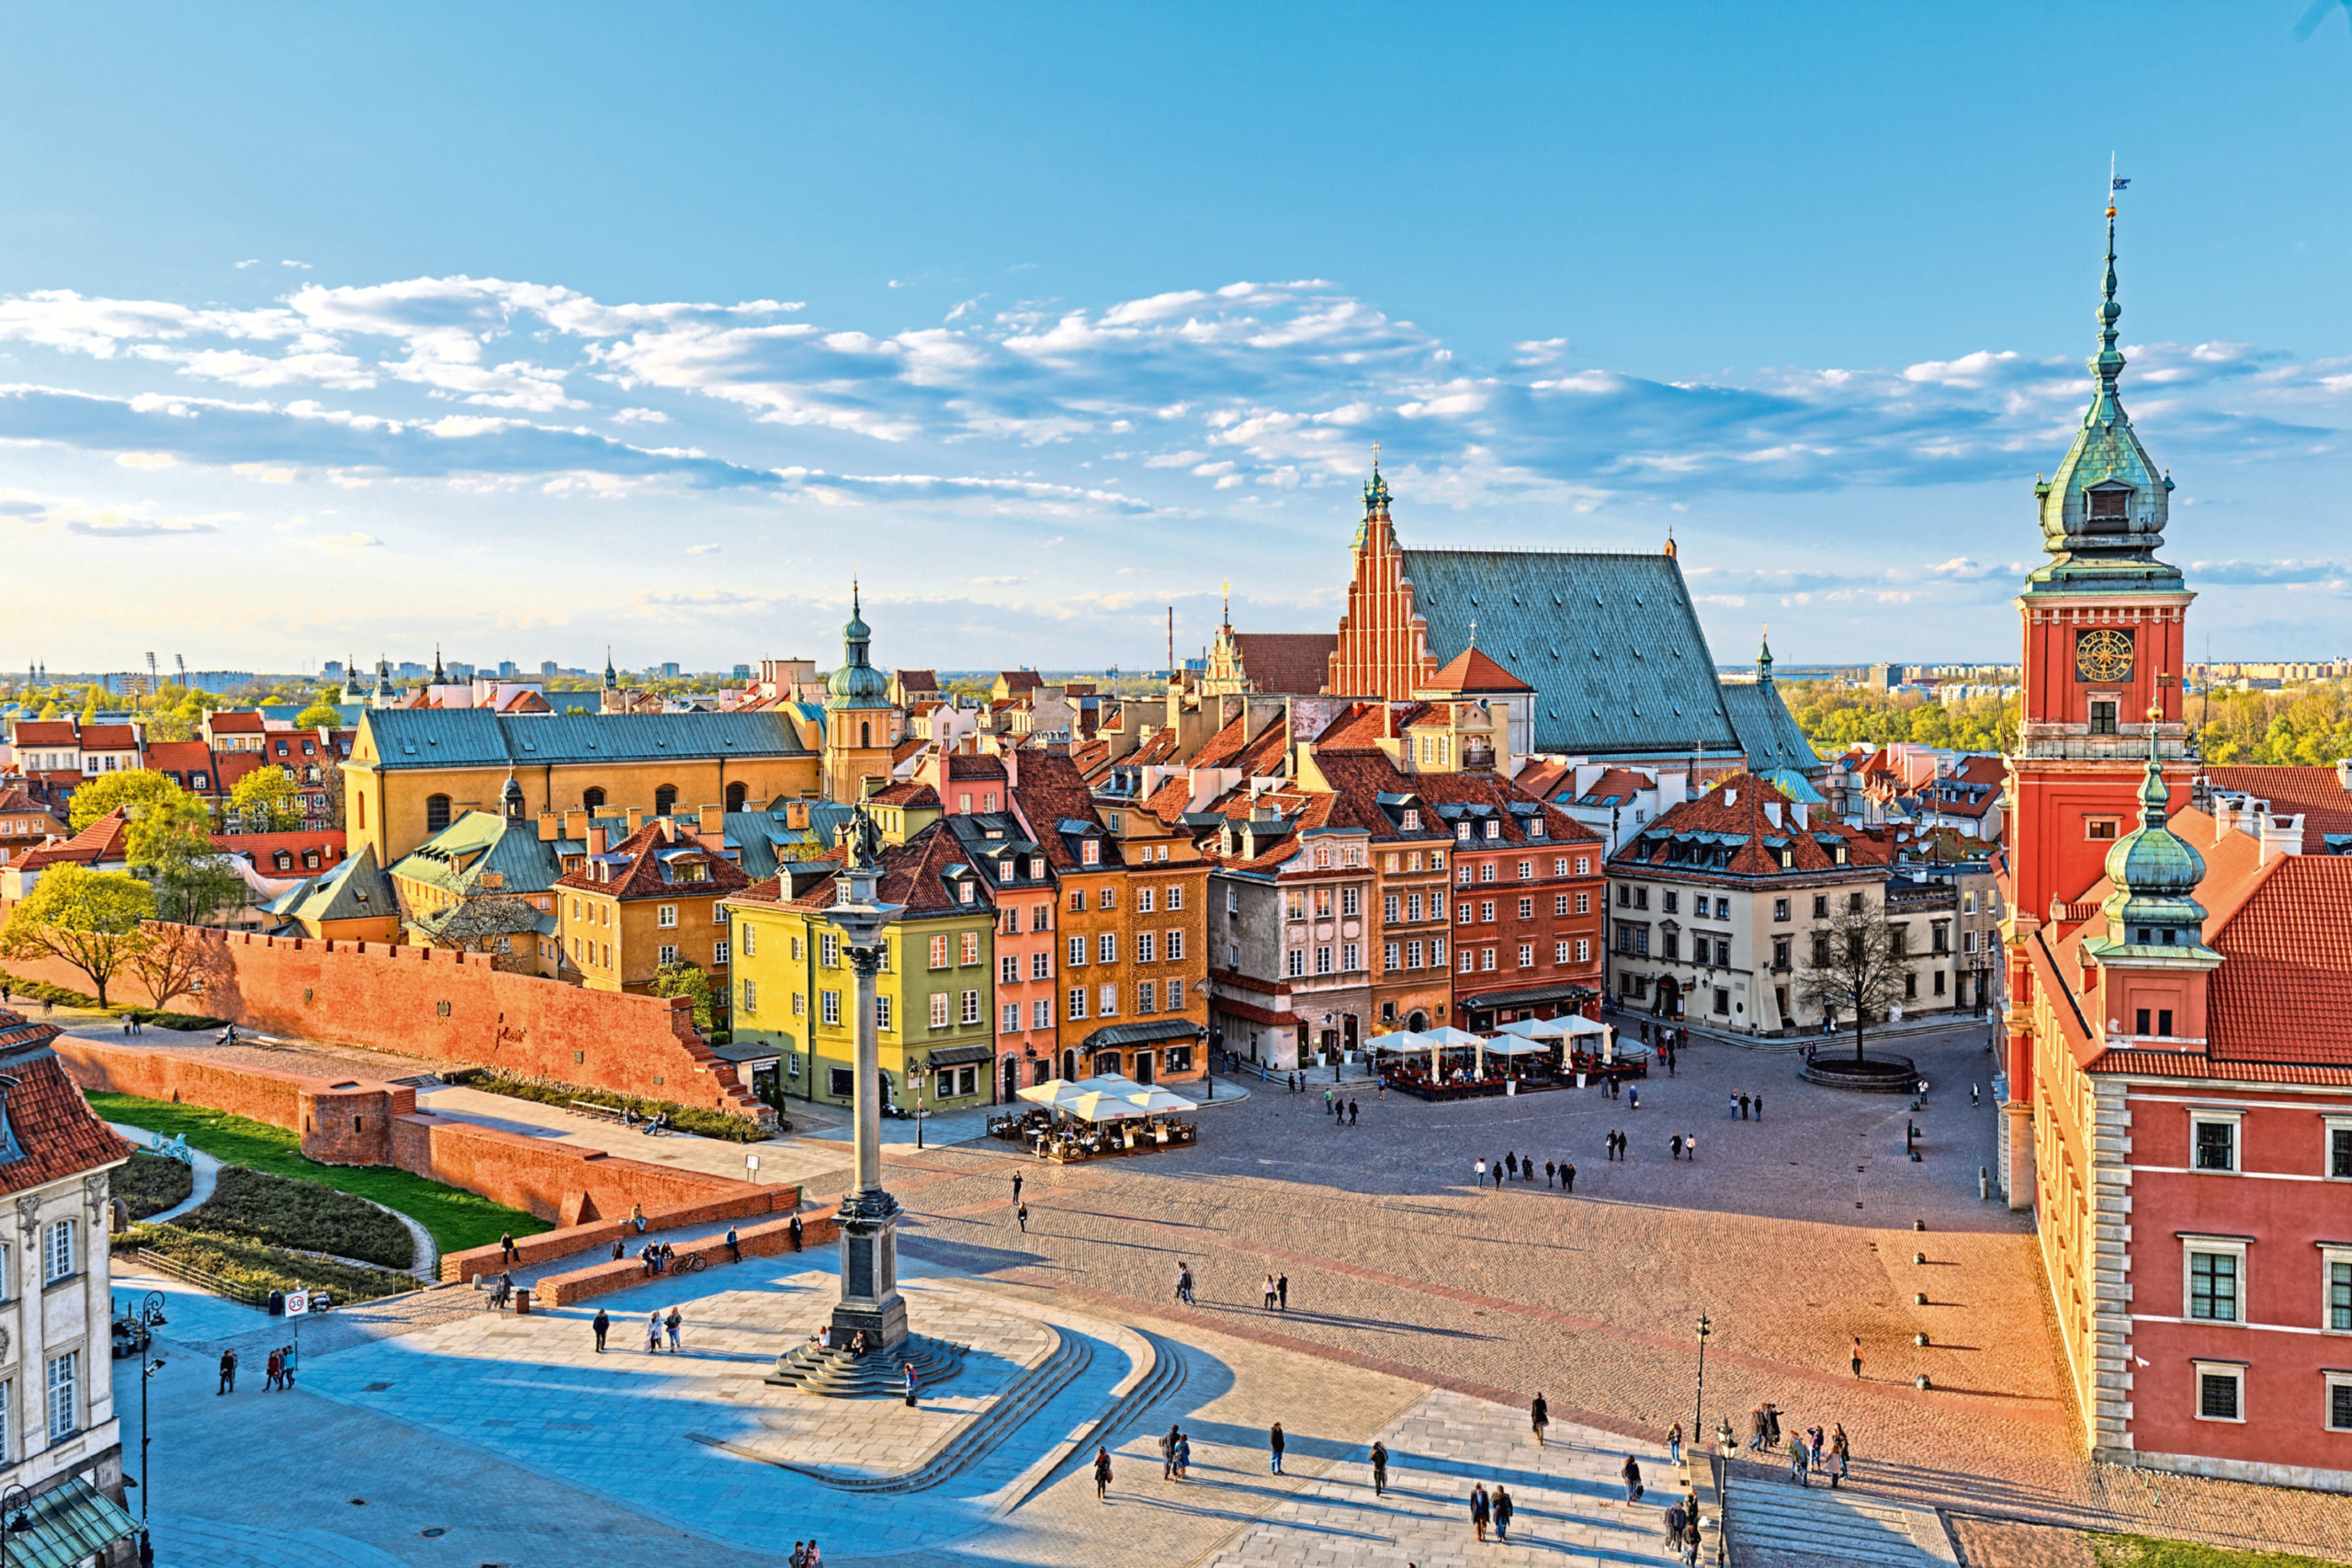 The old city in Warsaw